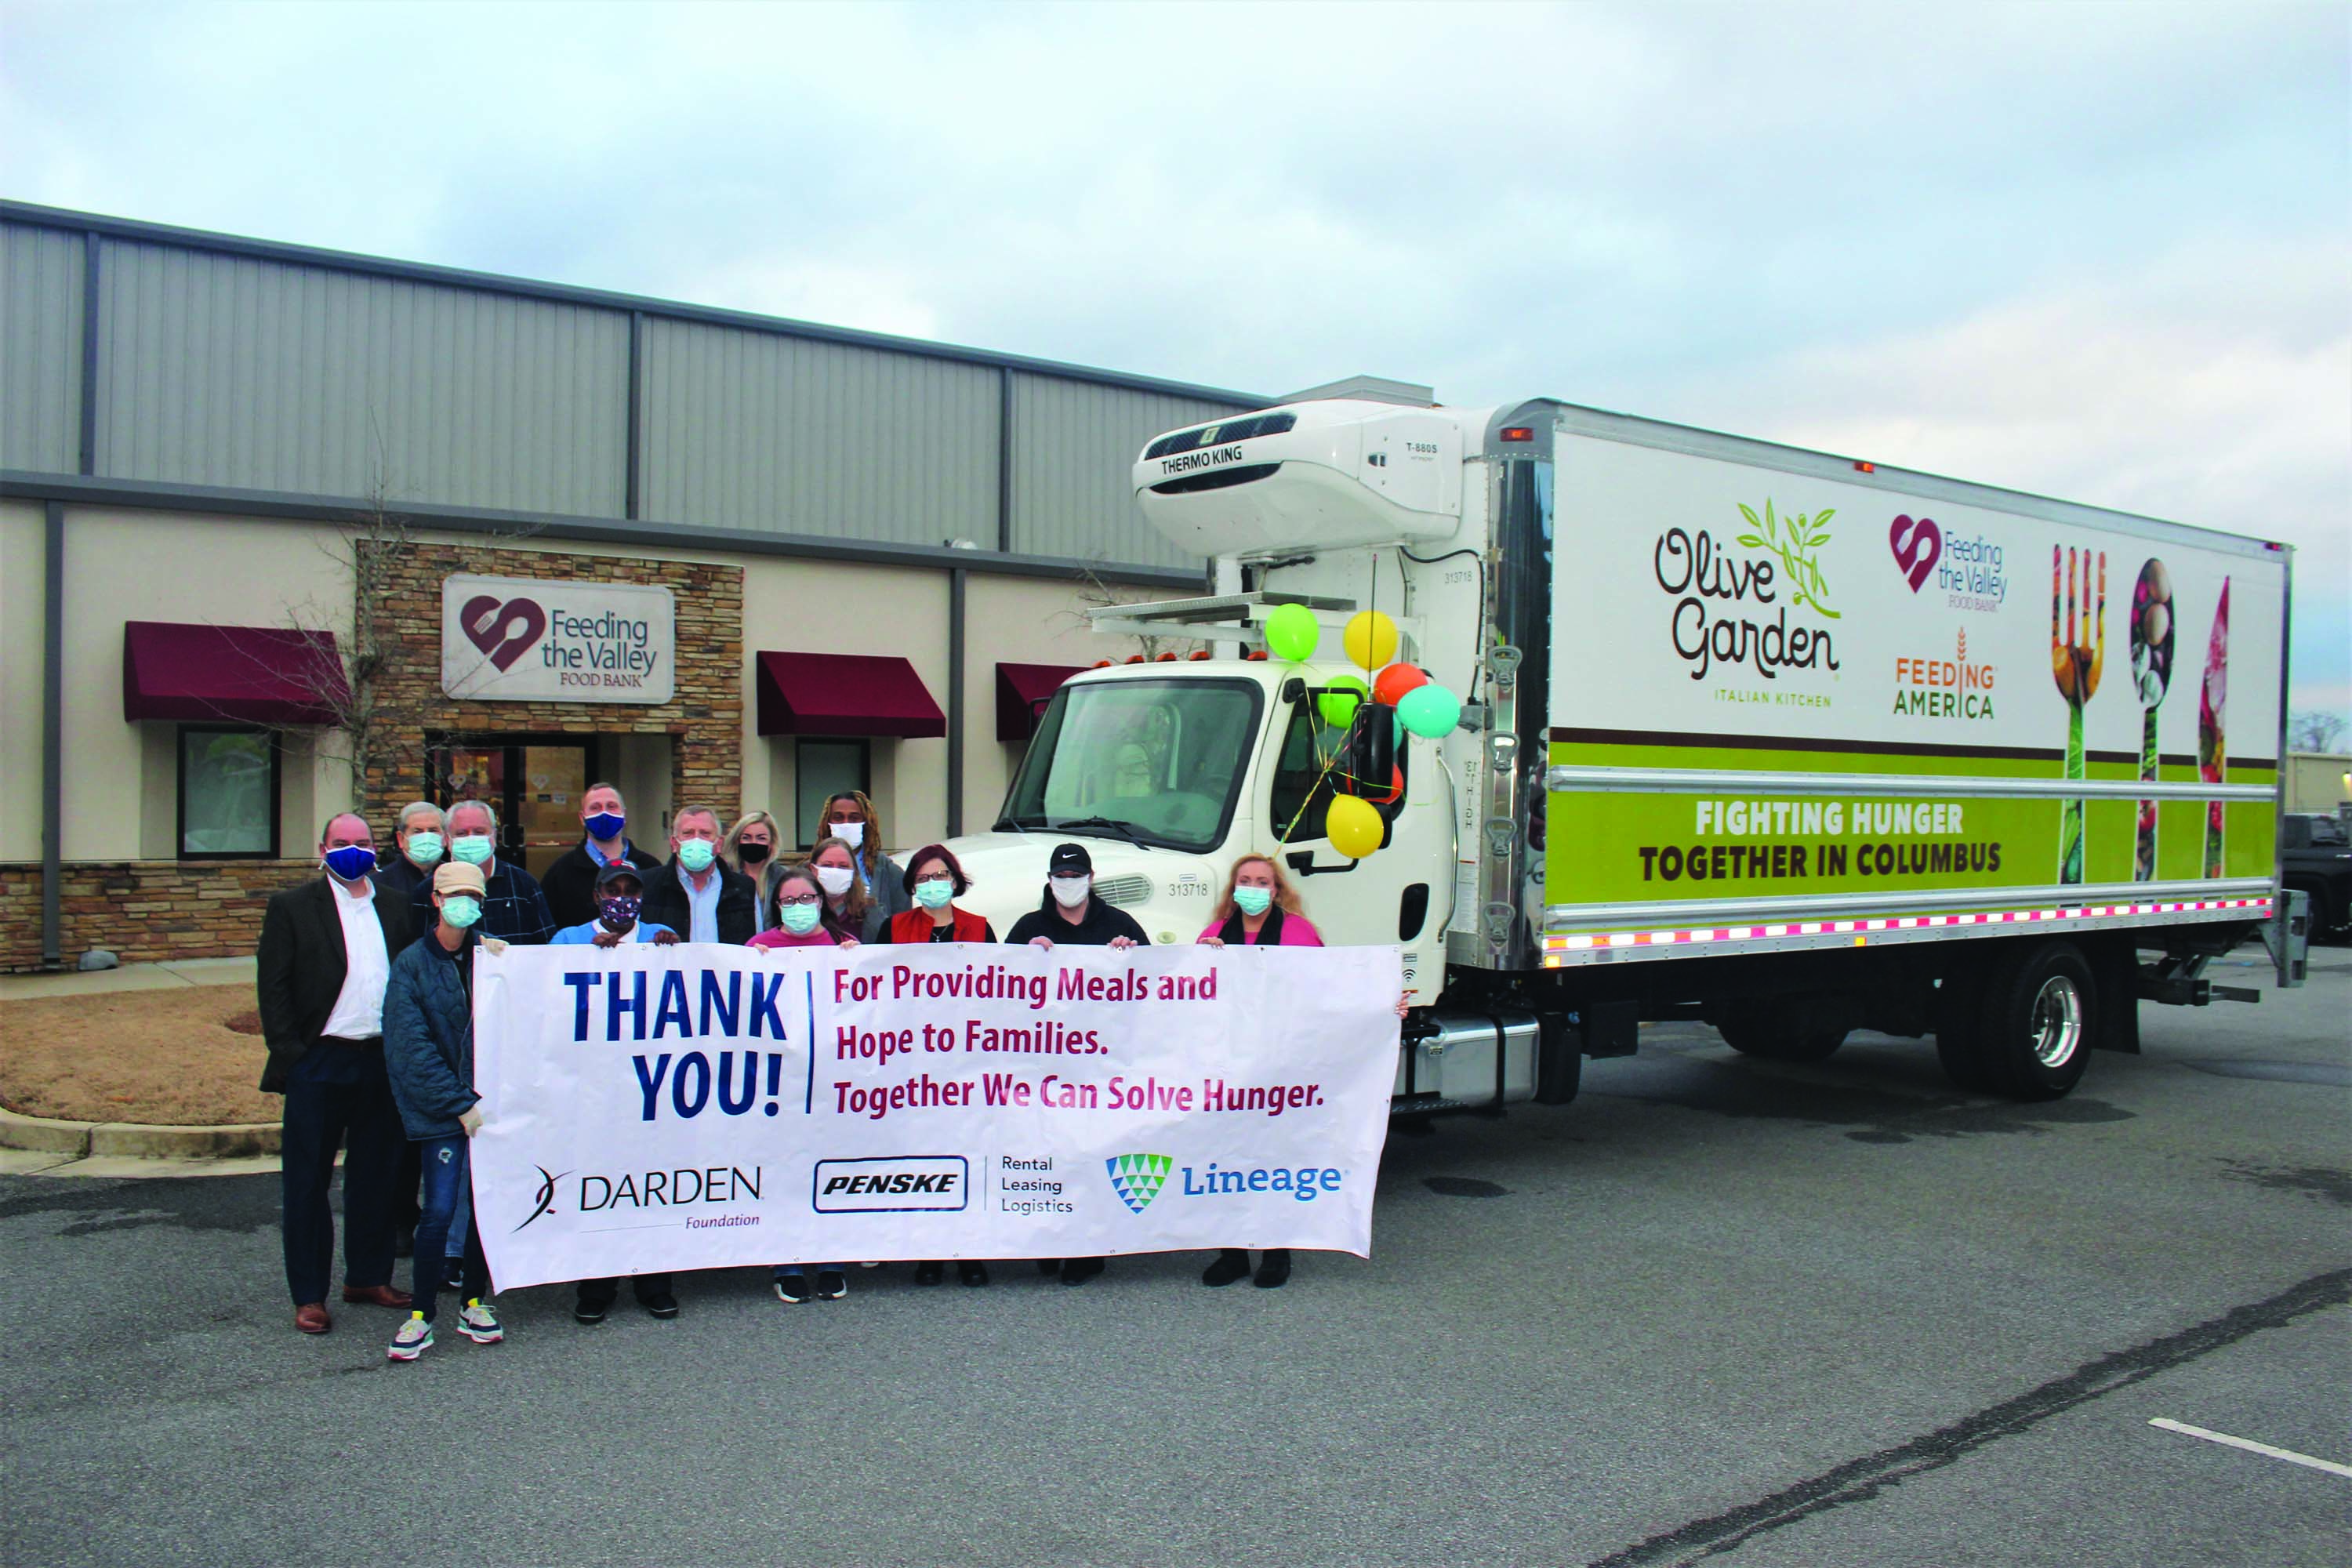 Feeding the Valley Food Bank Receives Vehicle and Funding to Help People Who Face Hunger in Their Service Area